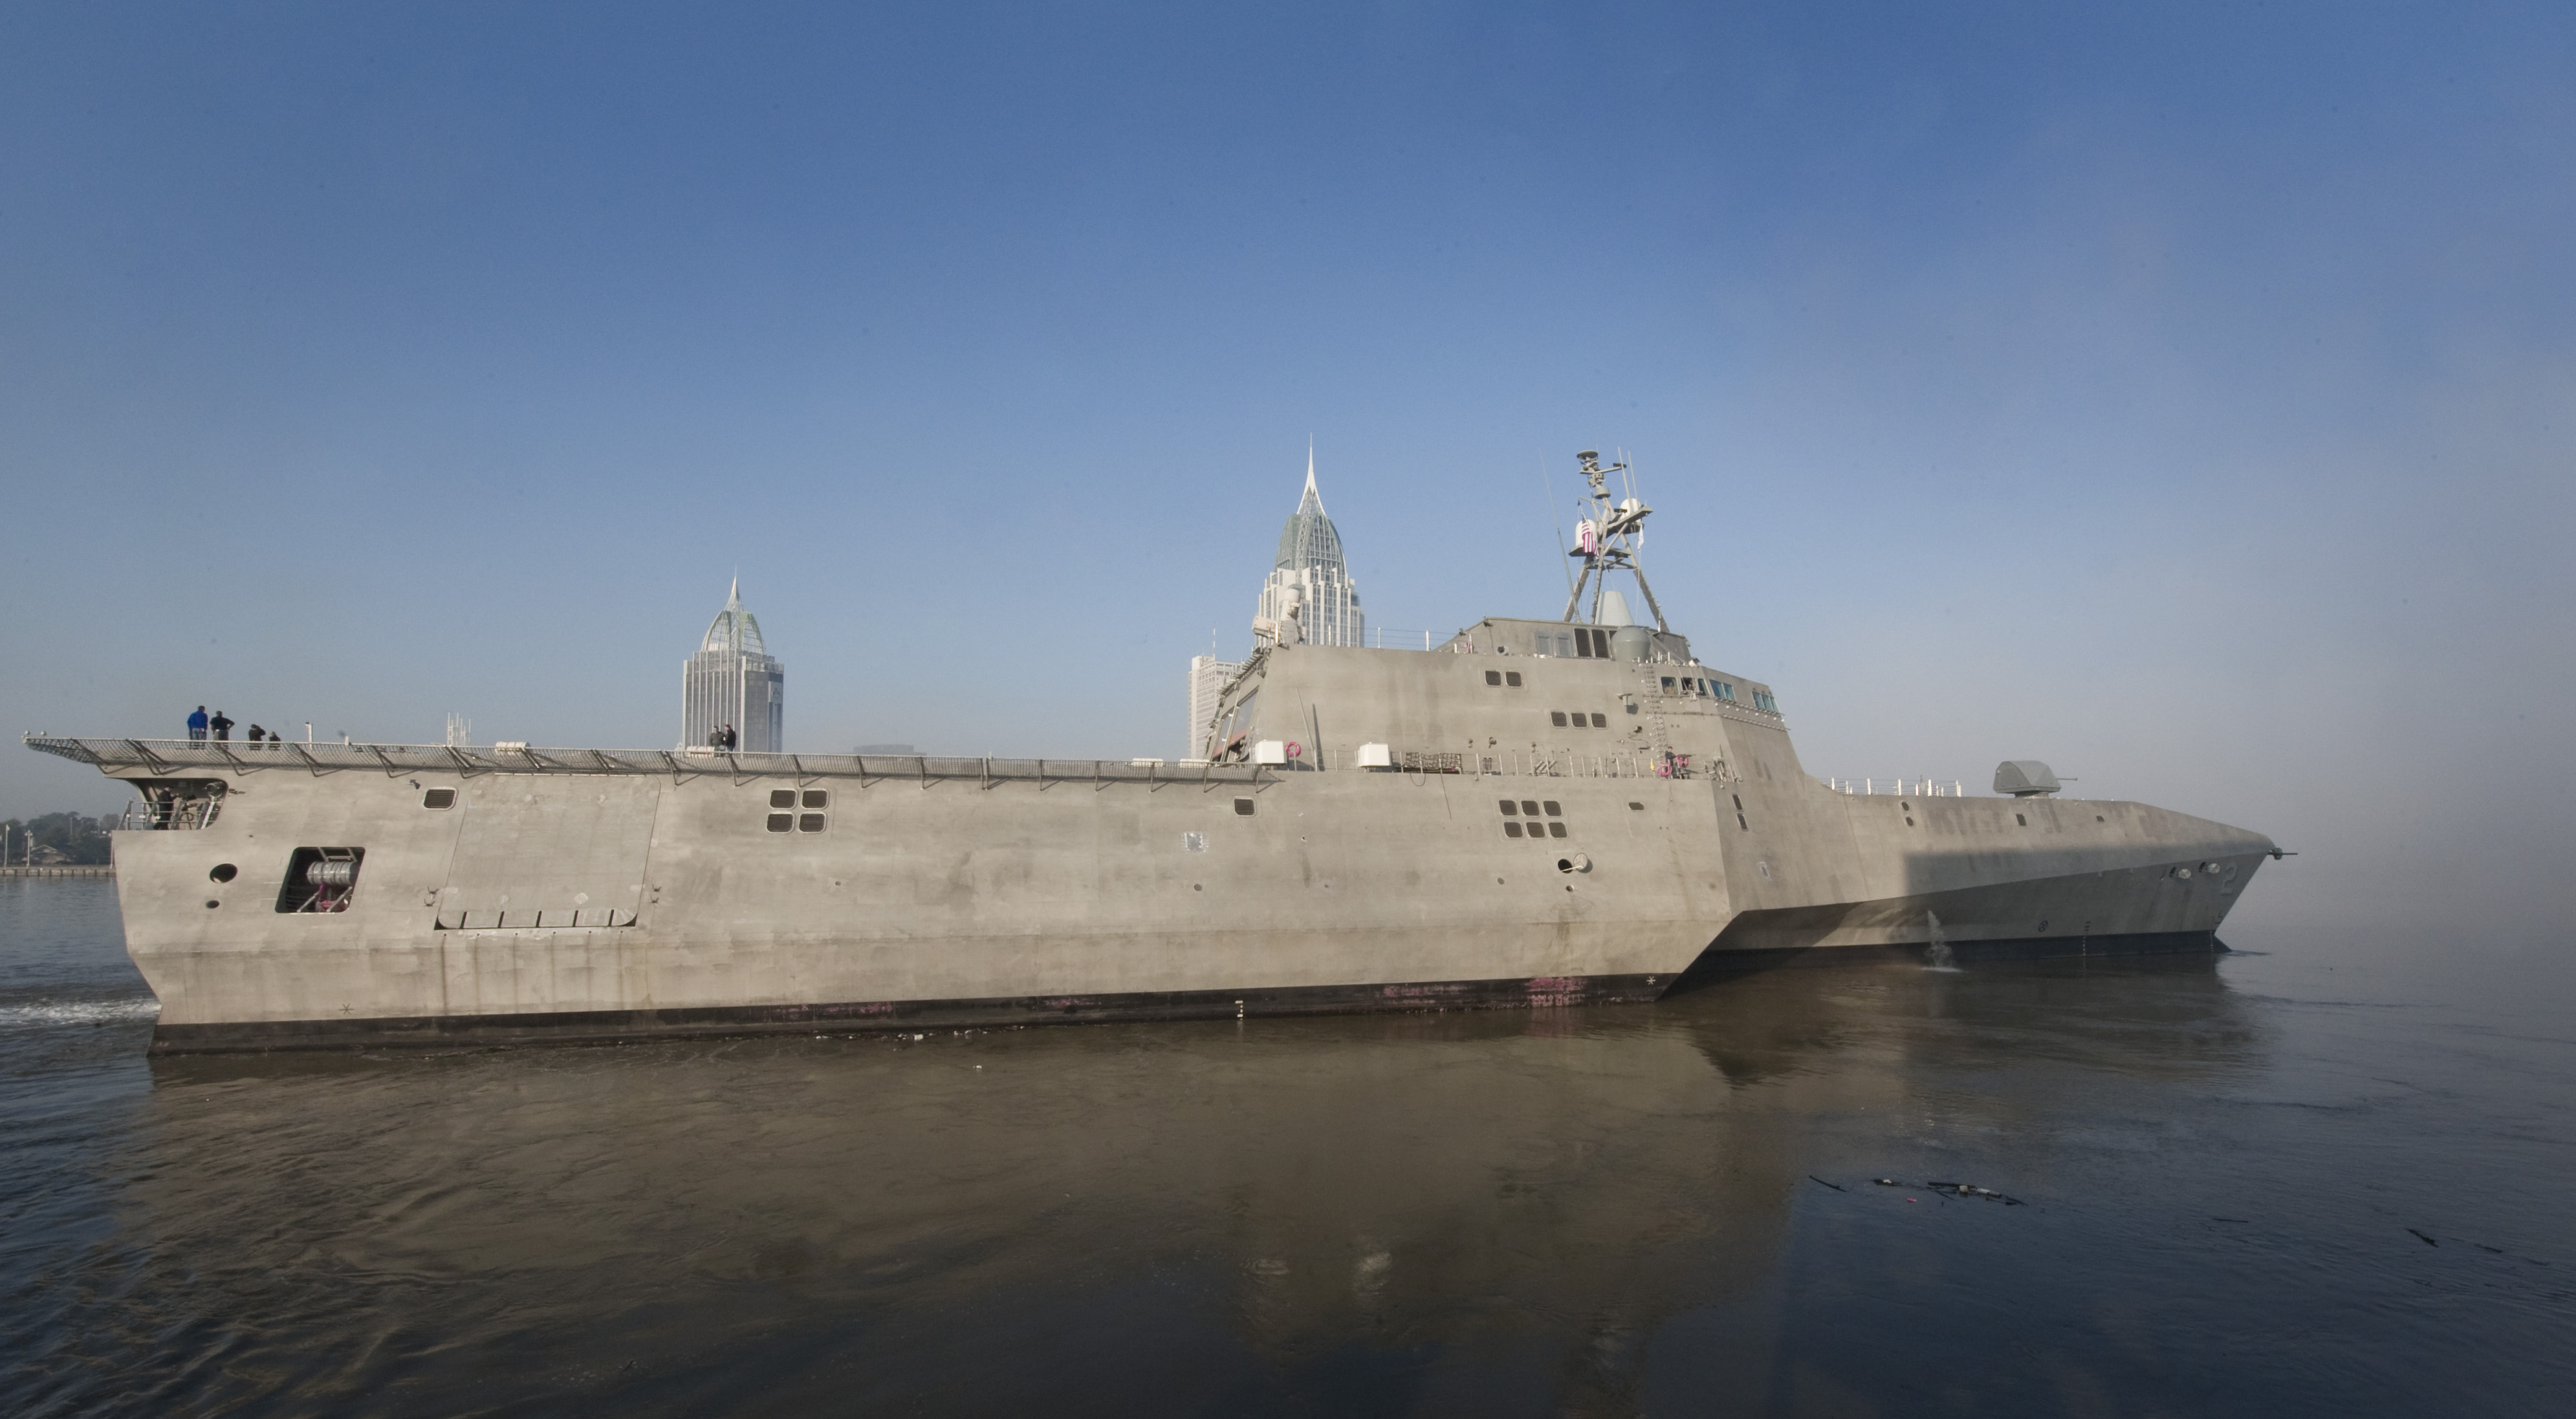 The U.S. Navy christened its latest littoral combat ship (LCS), the future USS Kansas City (LCS 22), during a ceremony at the Austal USA shipyard in Mobile, Alabama on September The ship.